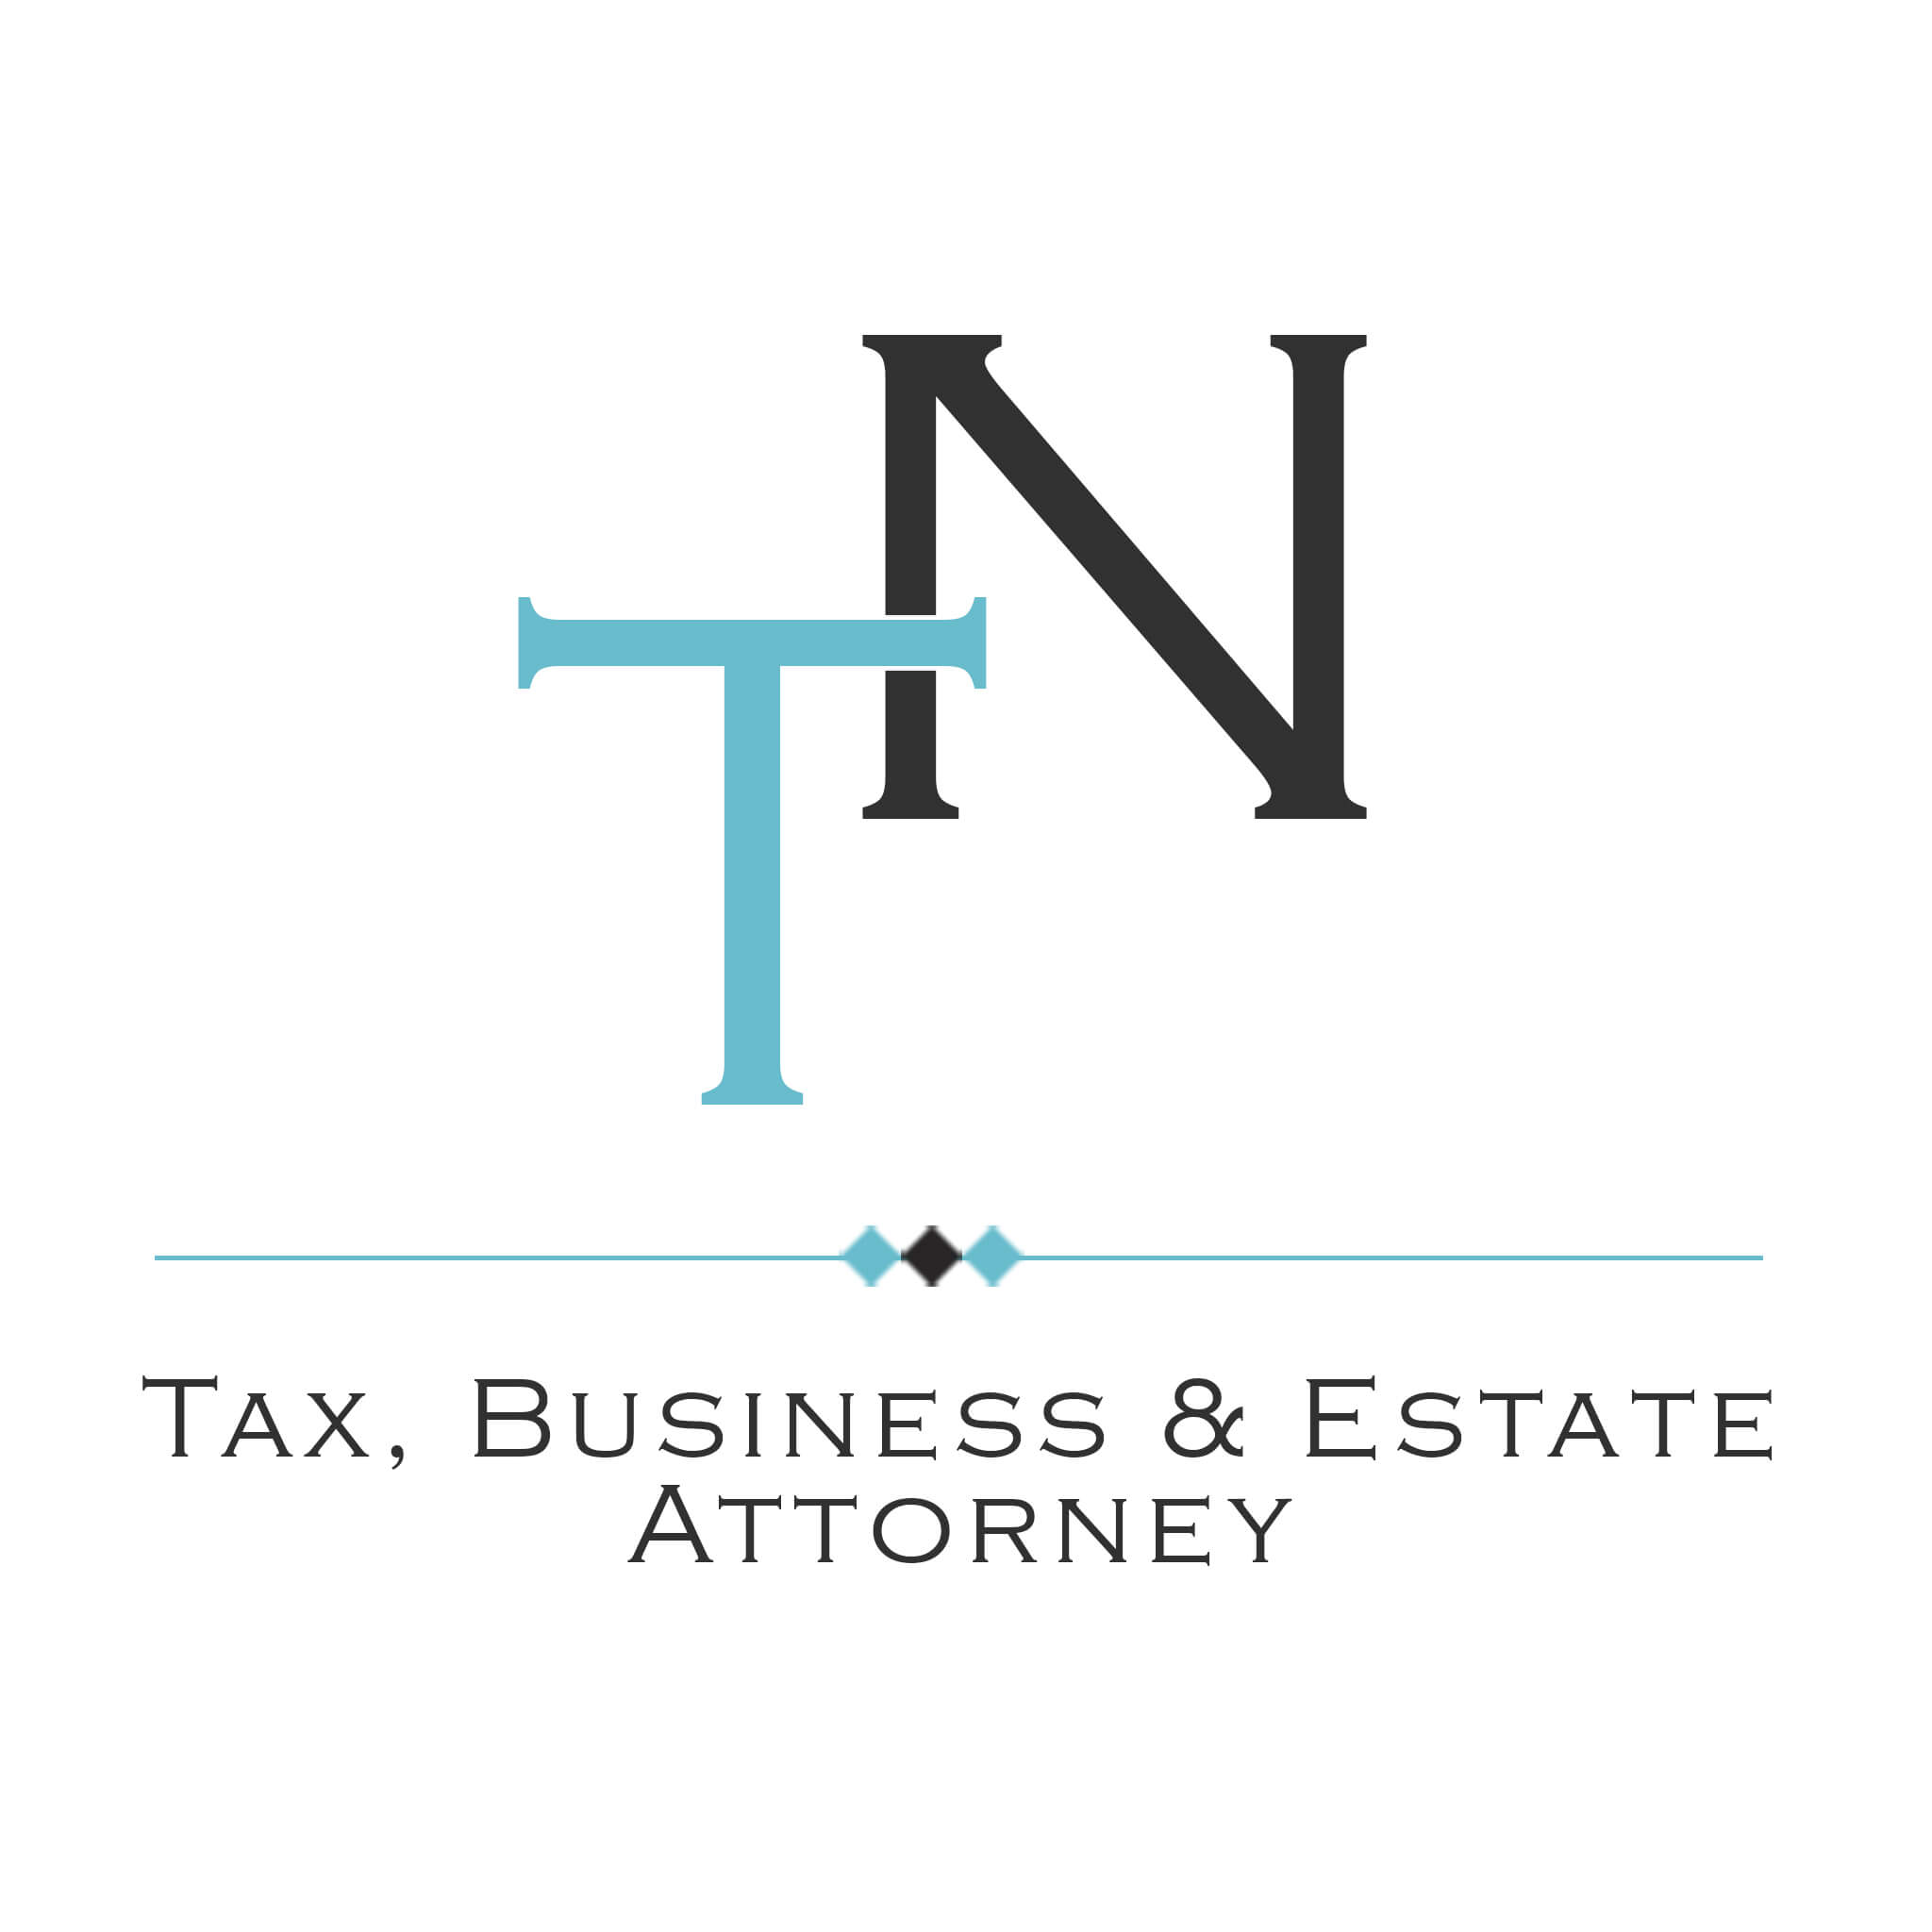 Theresa Nguyen is a Vietnamese Attorney specializing in Tax, Business, Real Estate, Immigration, Probate, Estate Planning